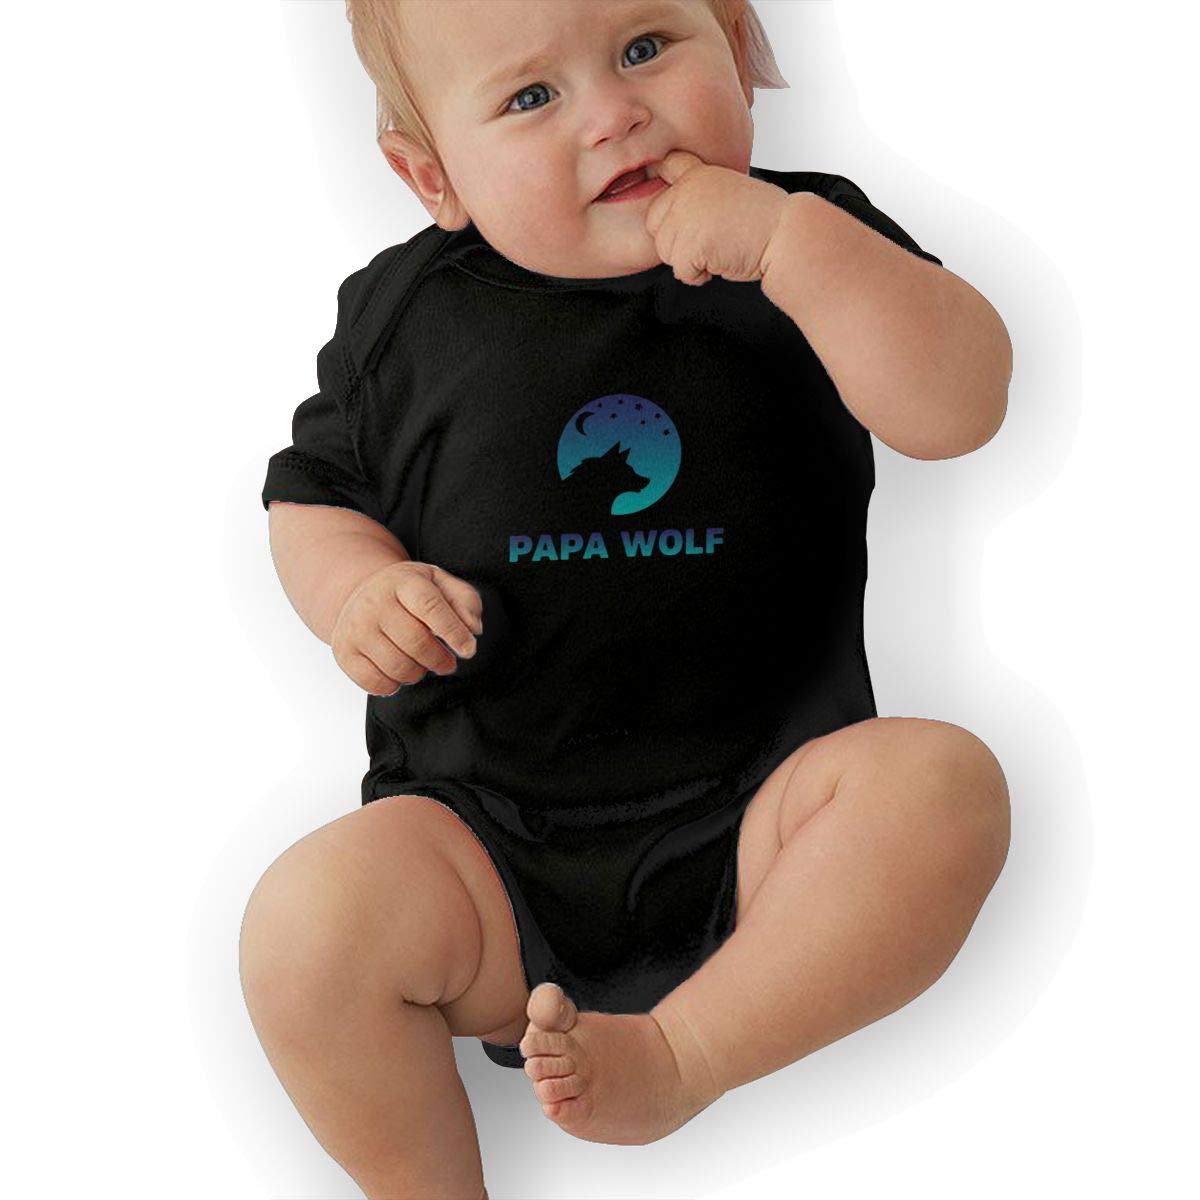 Papa Wolf Baby Pajamas Bodysuits Clothes Onesies Jumpsuits Outfits Black